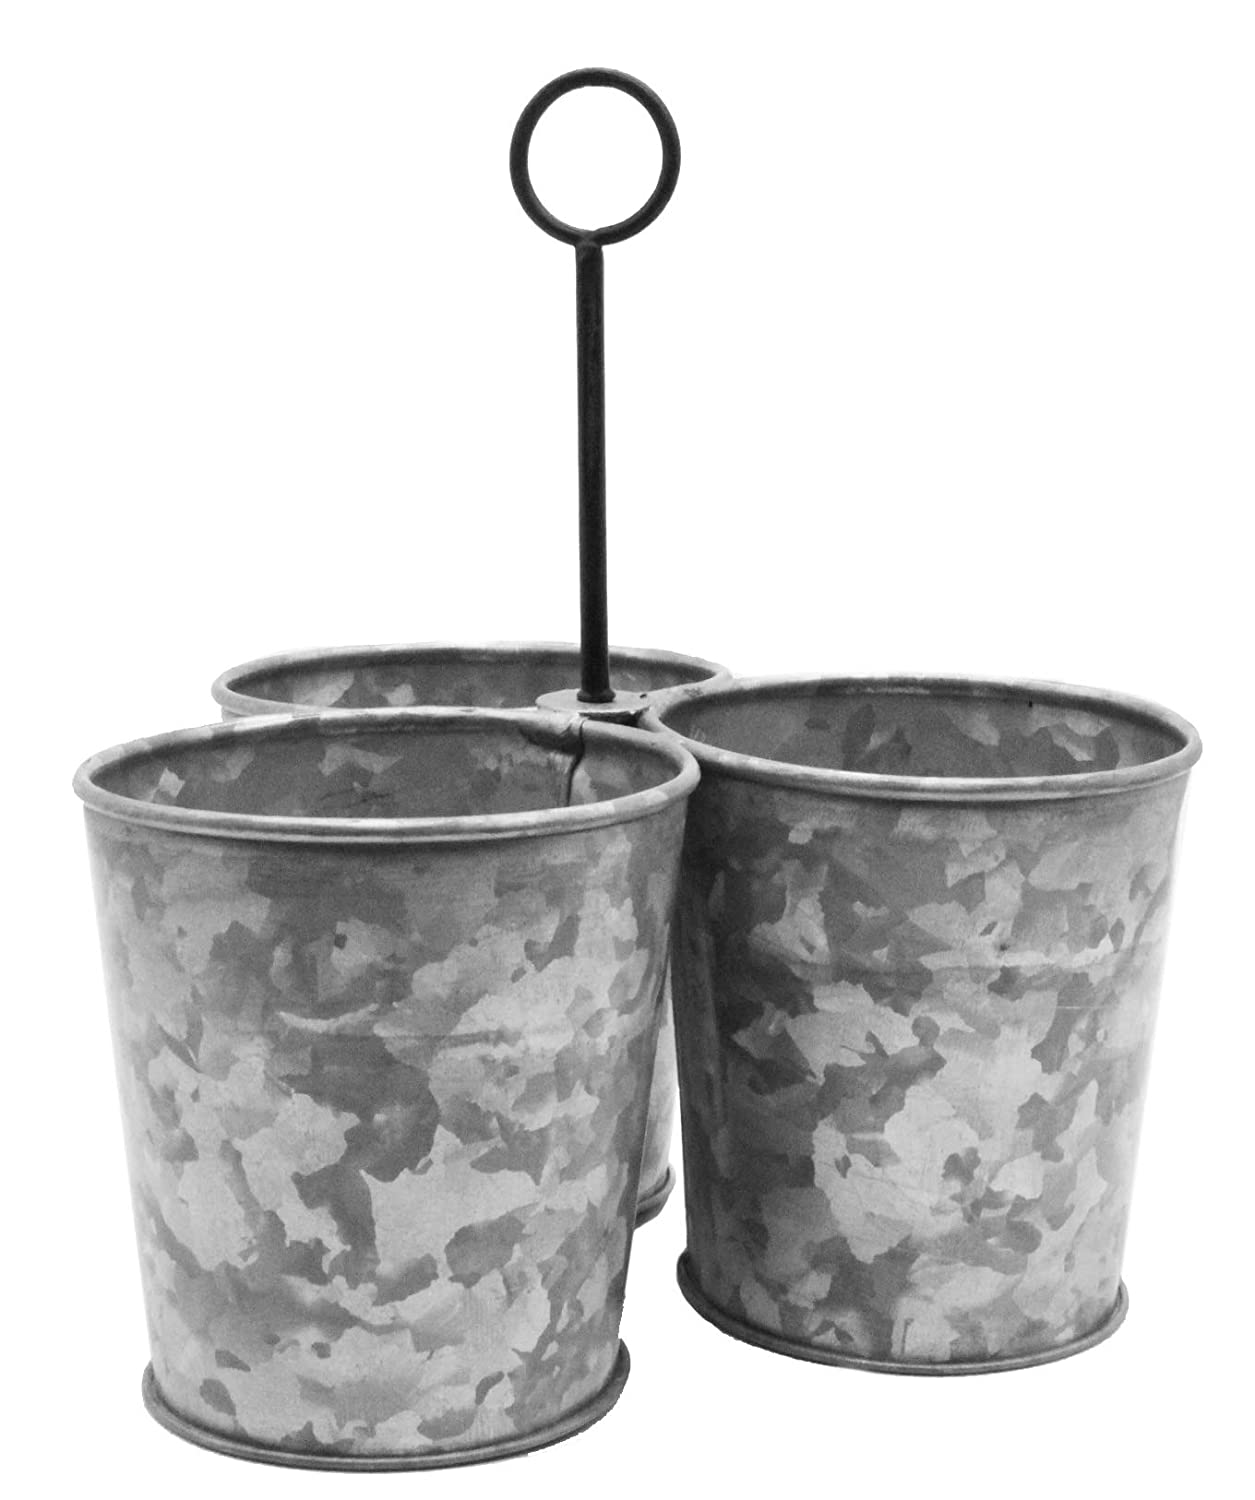 Galvanized 3 Metal Bucket Caddy Planter Farmhouse Rustic Style, Center Hanger Garden Beverage Container Utensil Organizer by Well Pack Box